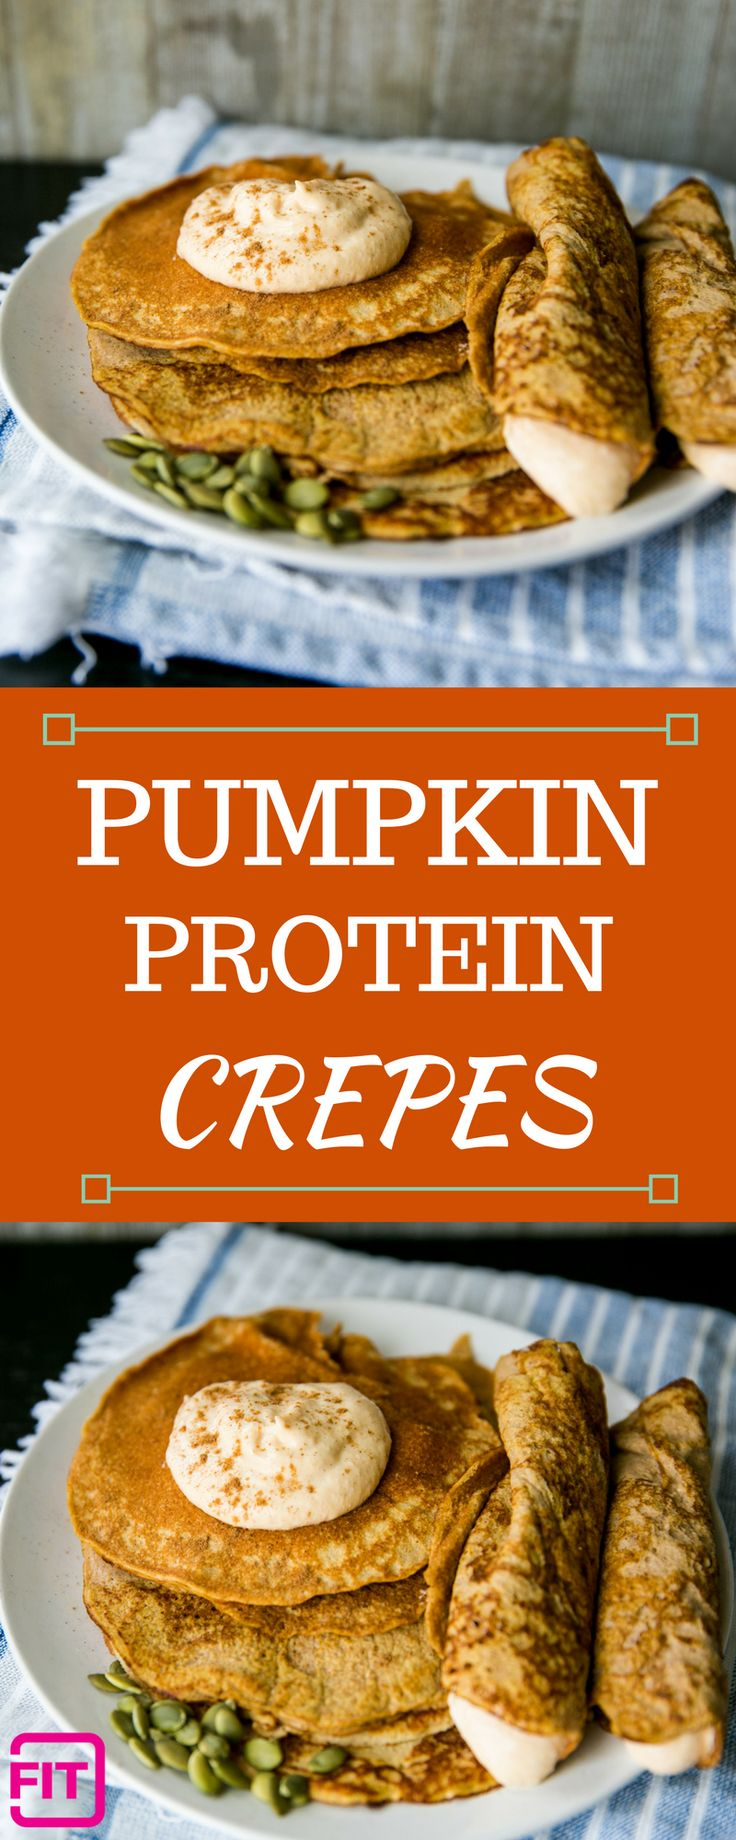 Pumpkin Protein Crepes